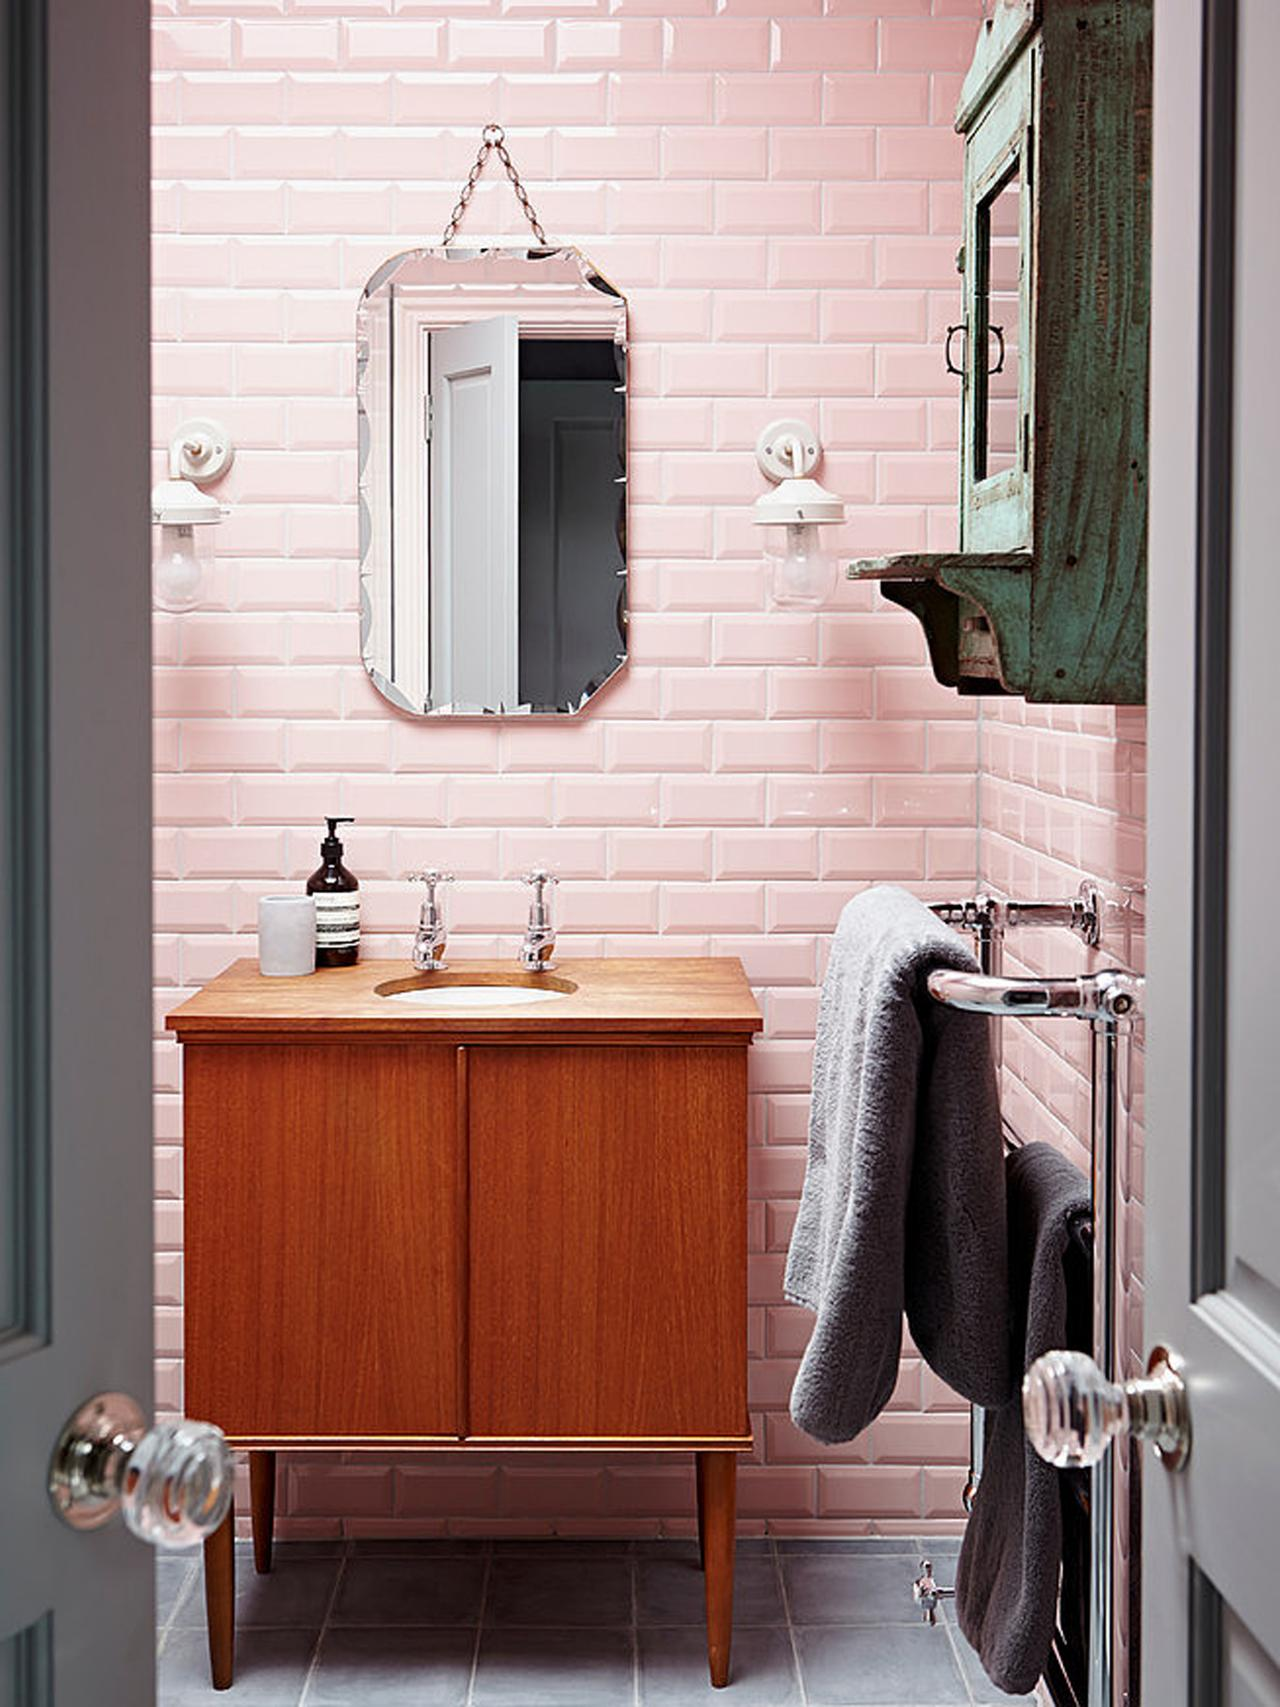 Reasons To Love Retro Pink Tiled Bathrooms Hgtv S Decorating Design Blog Hgtv